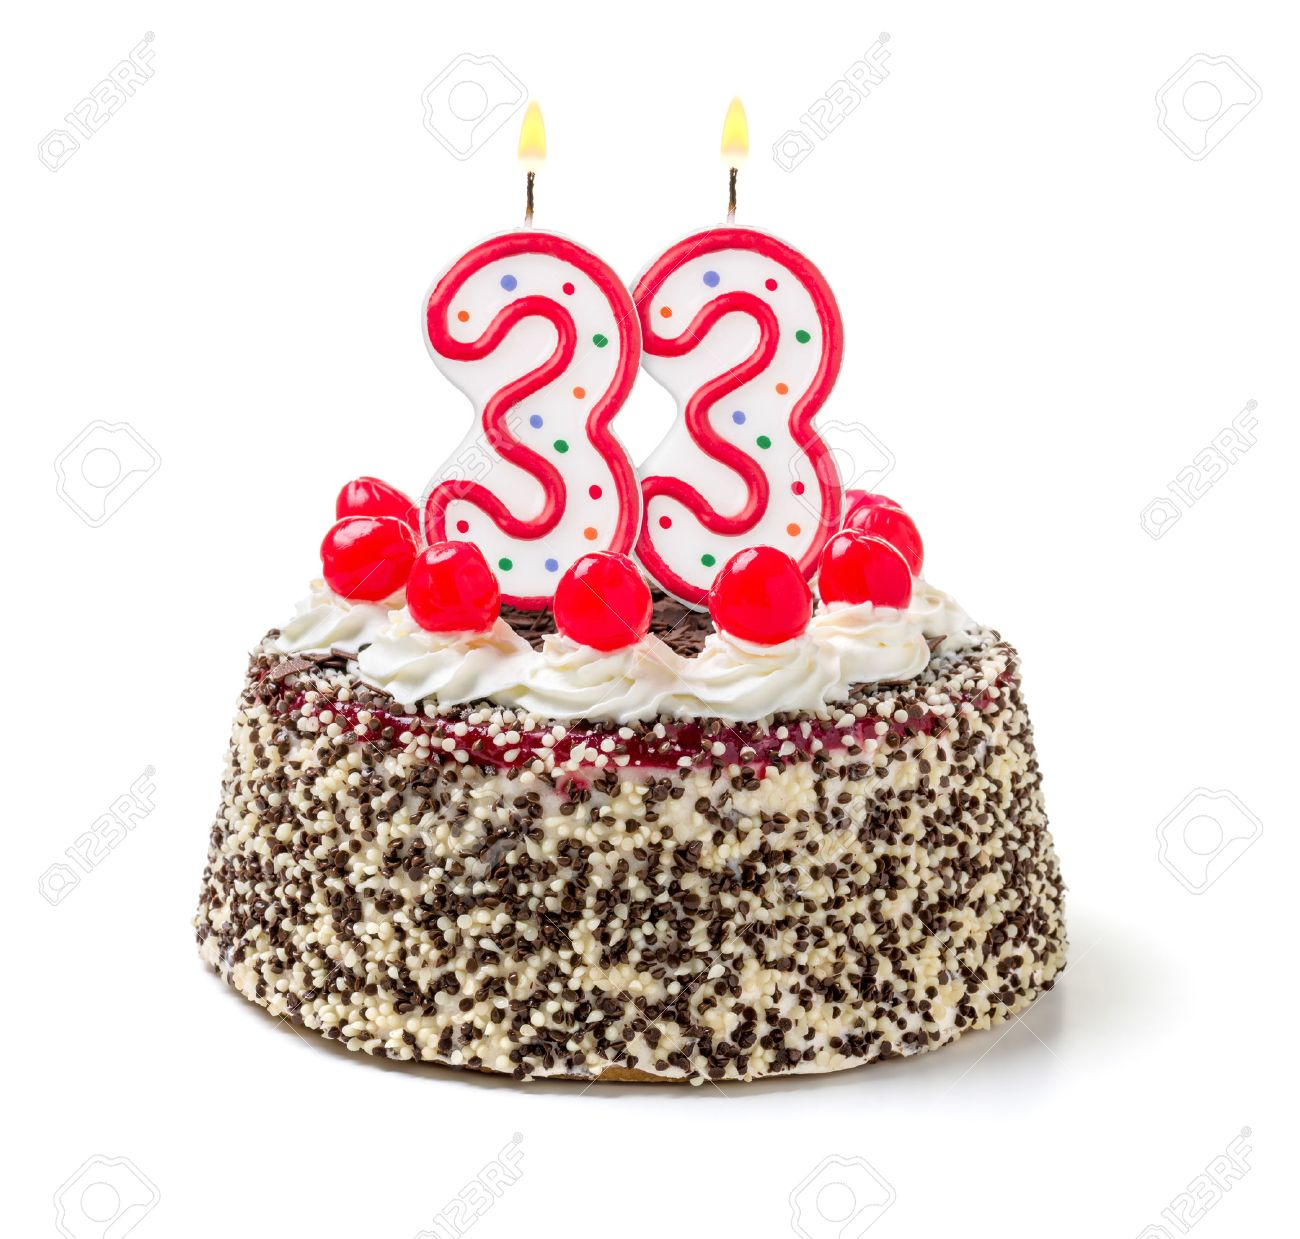 Birthday Cake With Burning Candle Number 33 Stock Photo